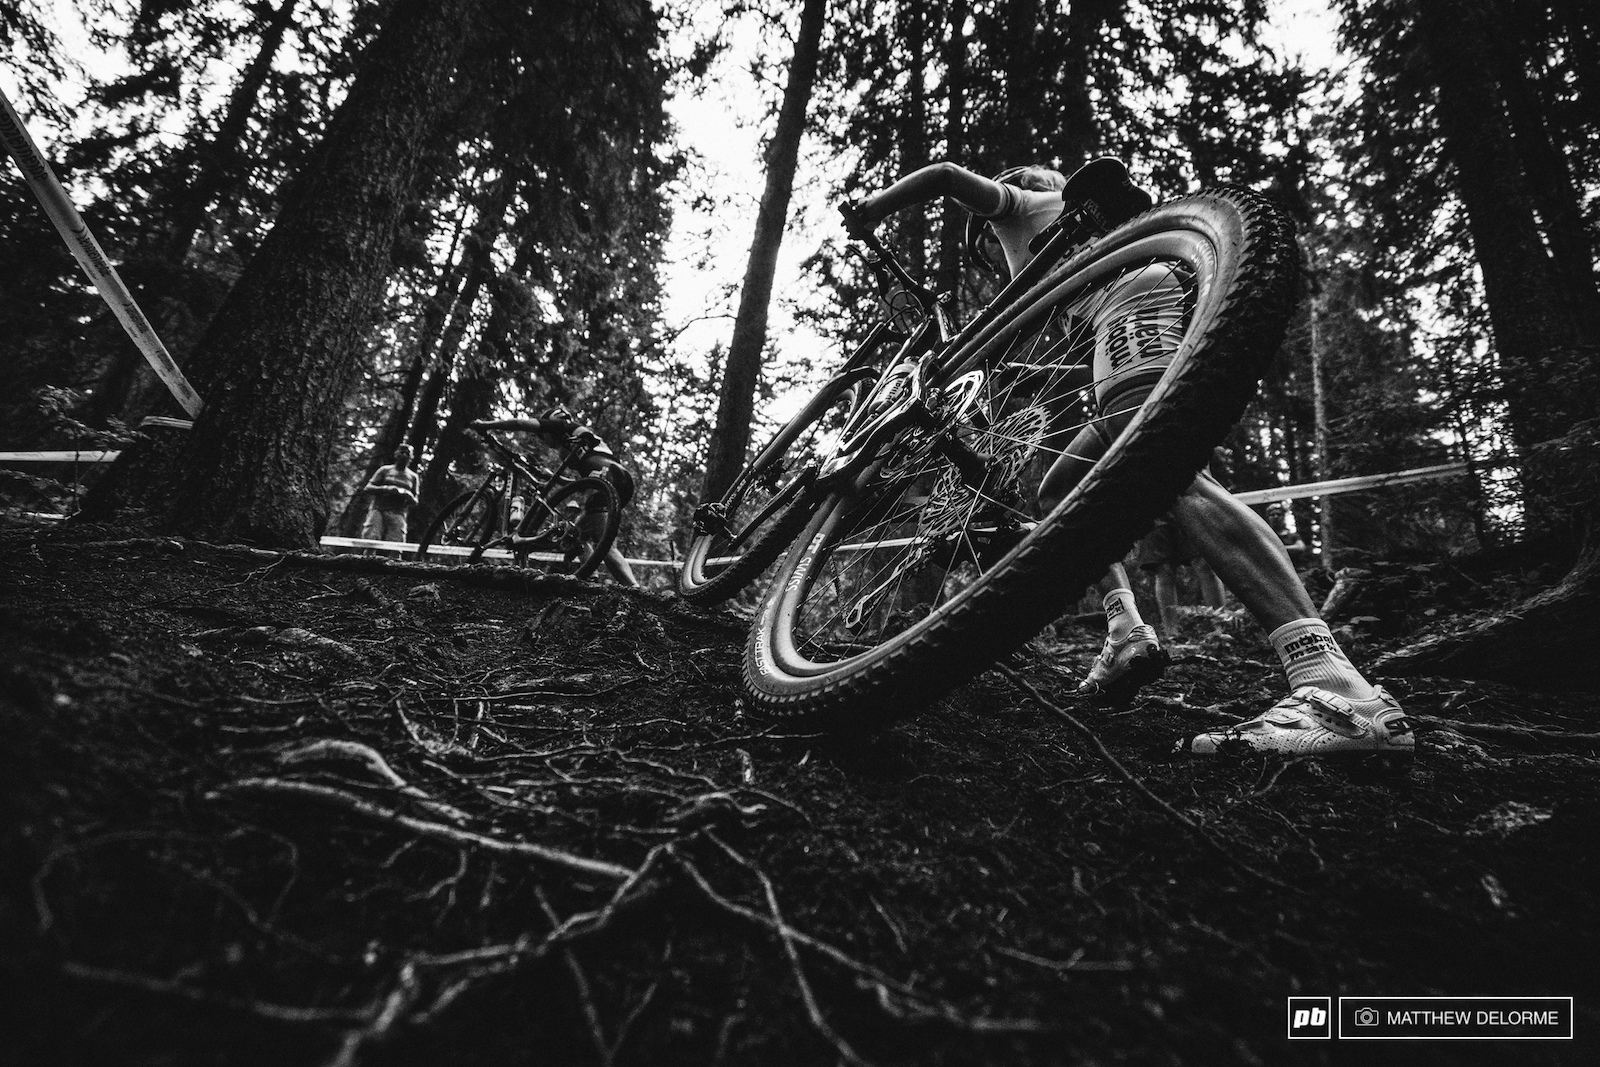 Some of the woods were slick rooty mess and most riders had to dismount.